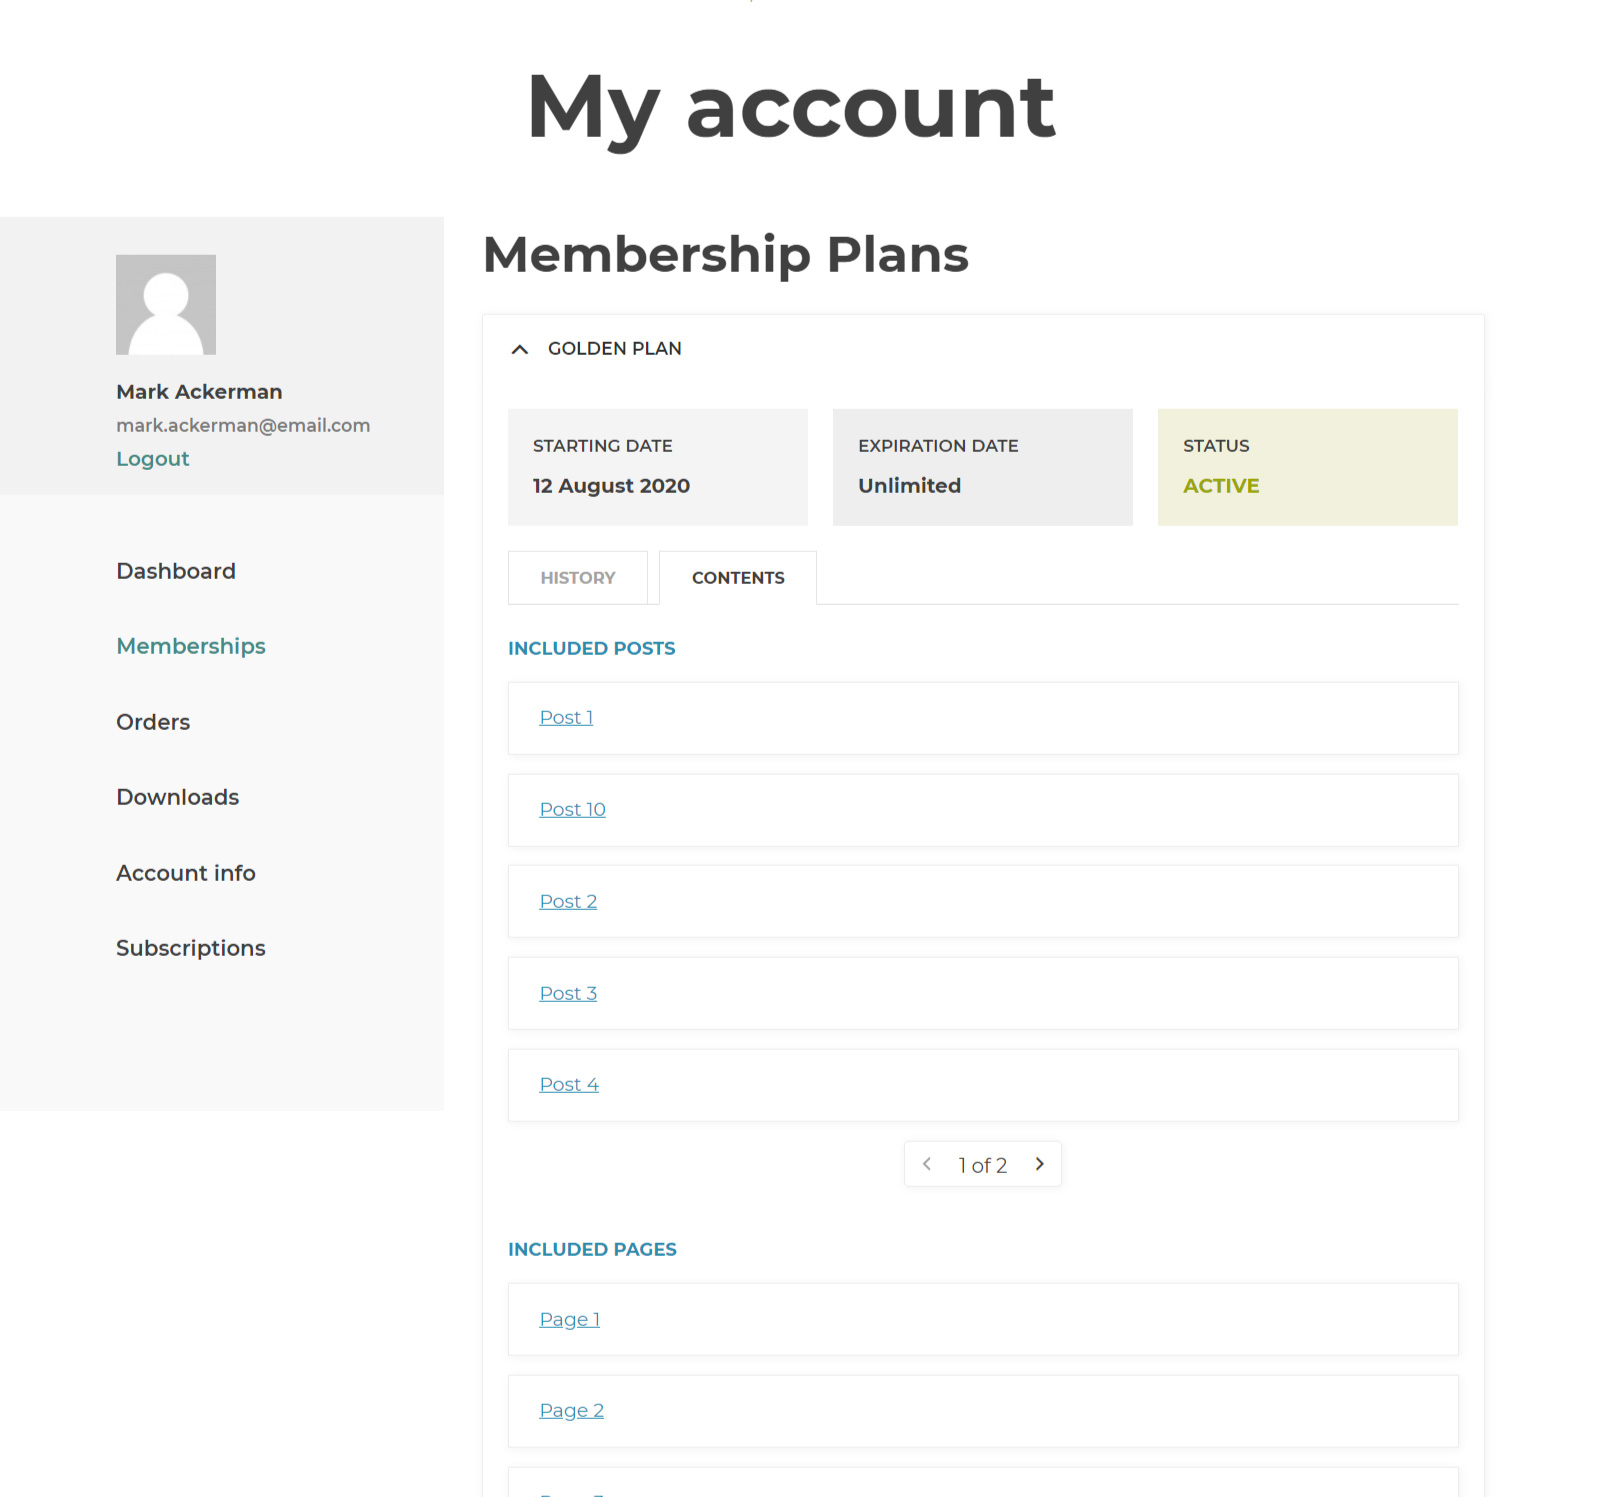 Memberships in My account